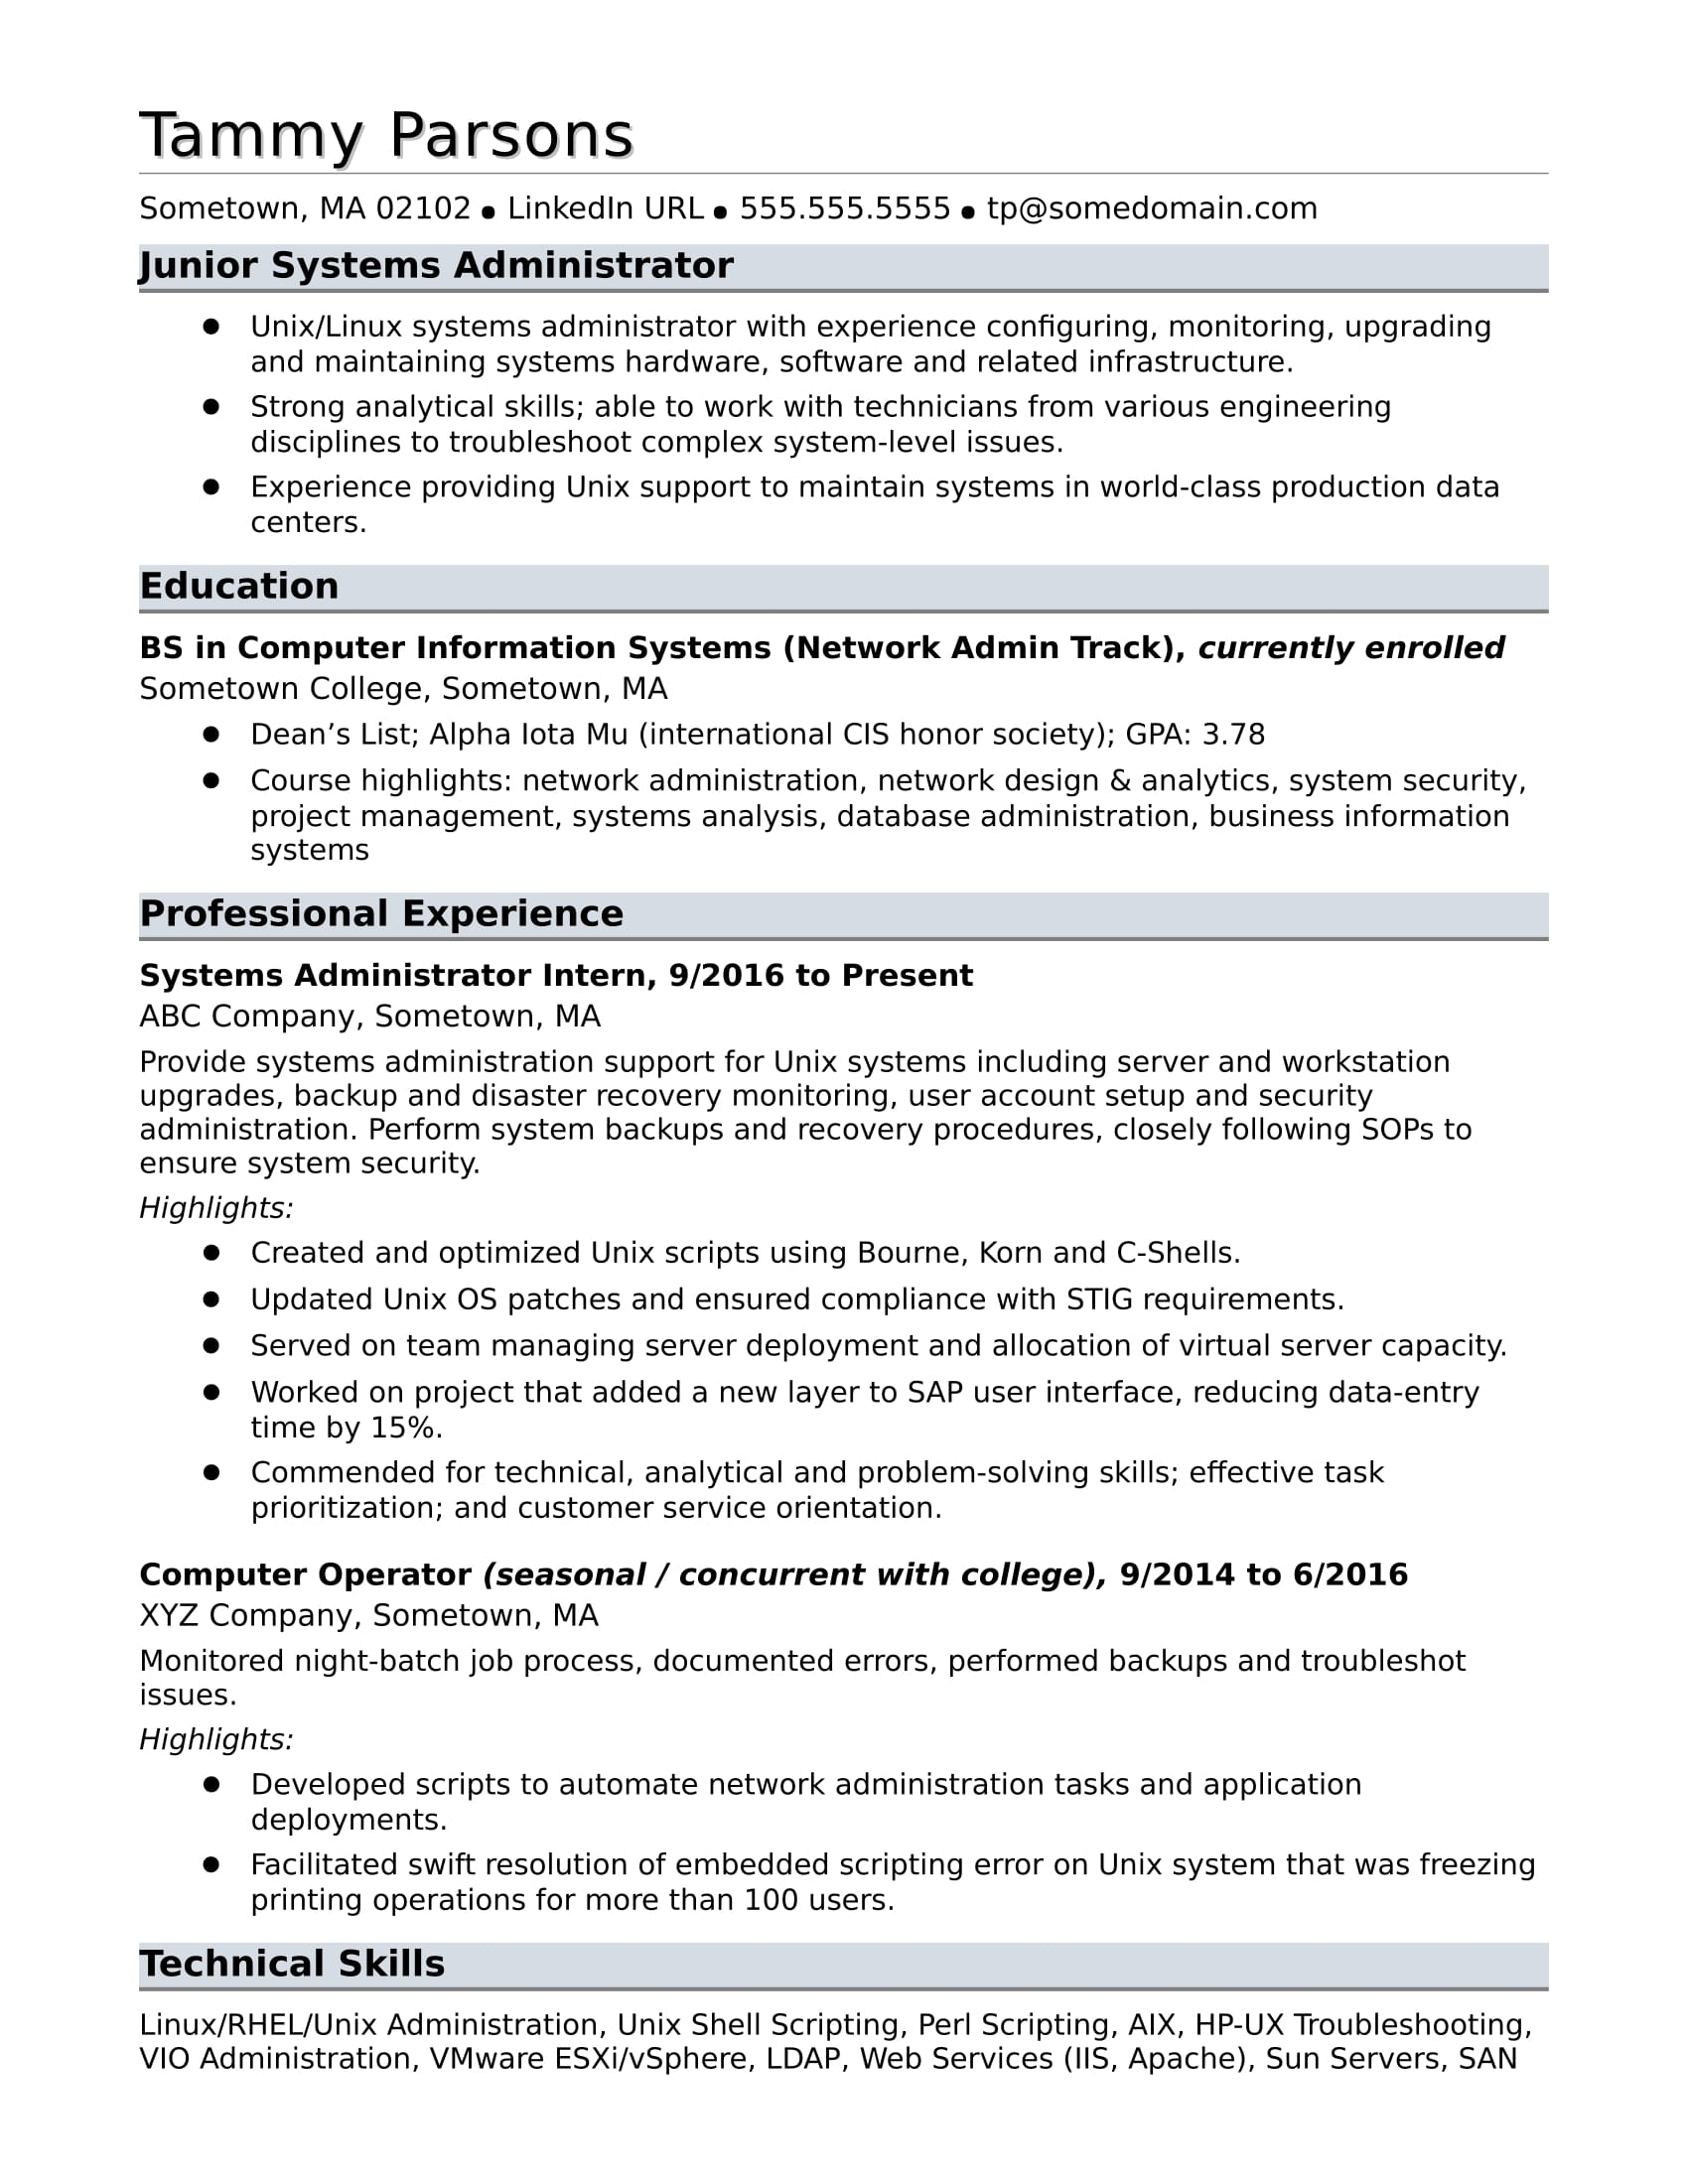 sample resume for an entry level systems administrator monster windows system experience Resume Windows System Administrator Sample Resume Experience